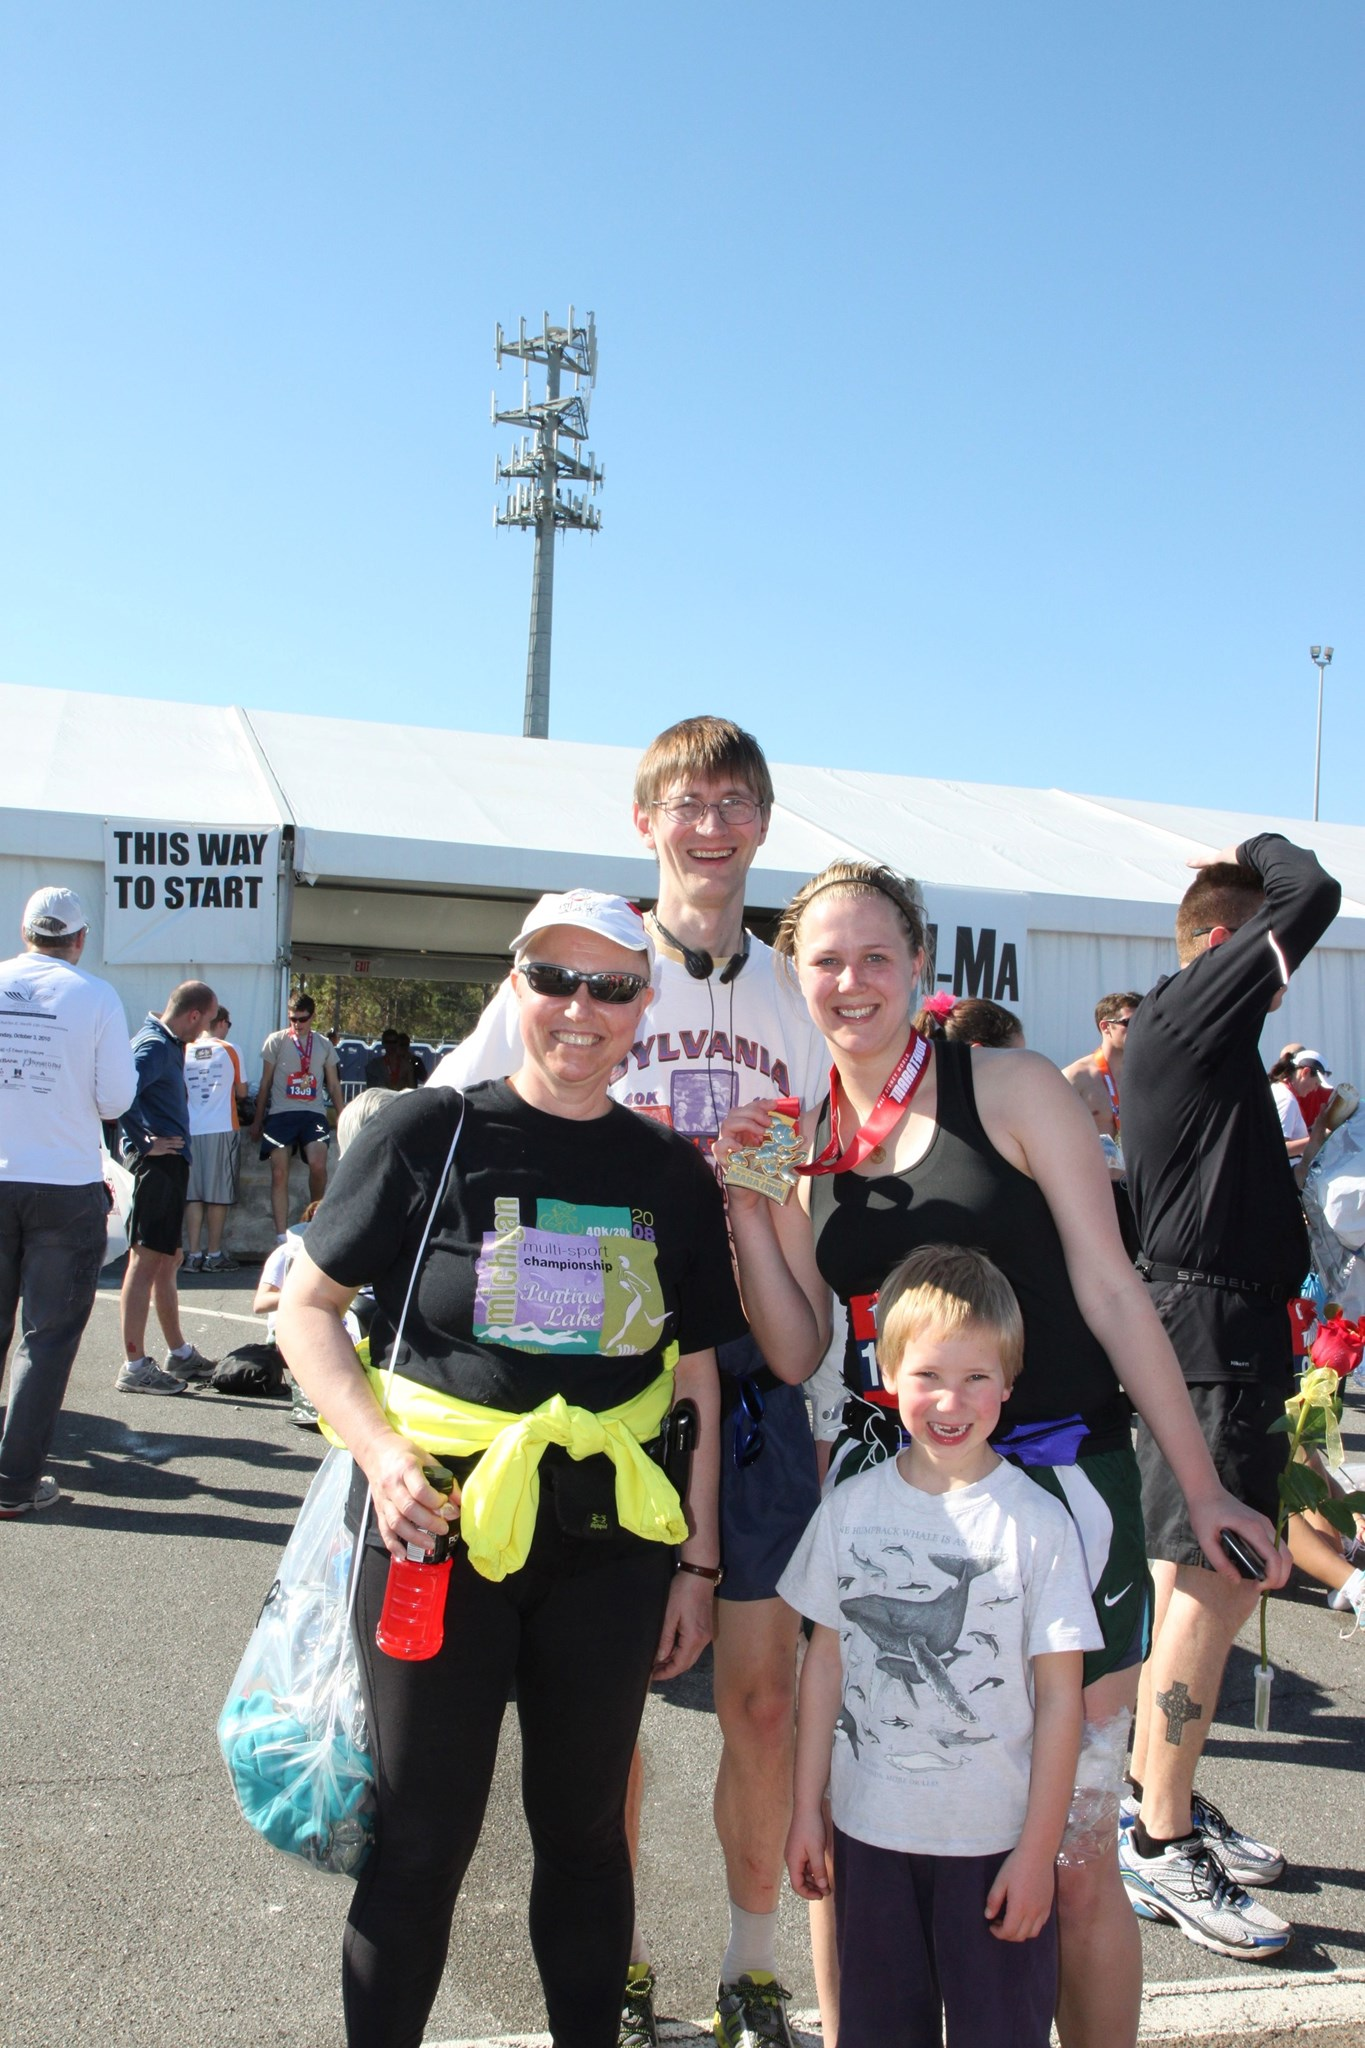 Kerppola Family at Disney Marathon - January 2011